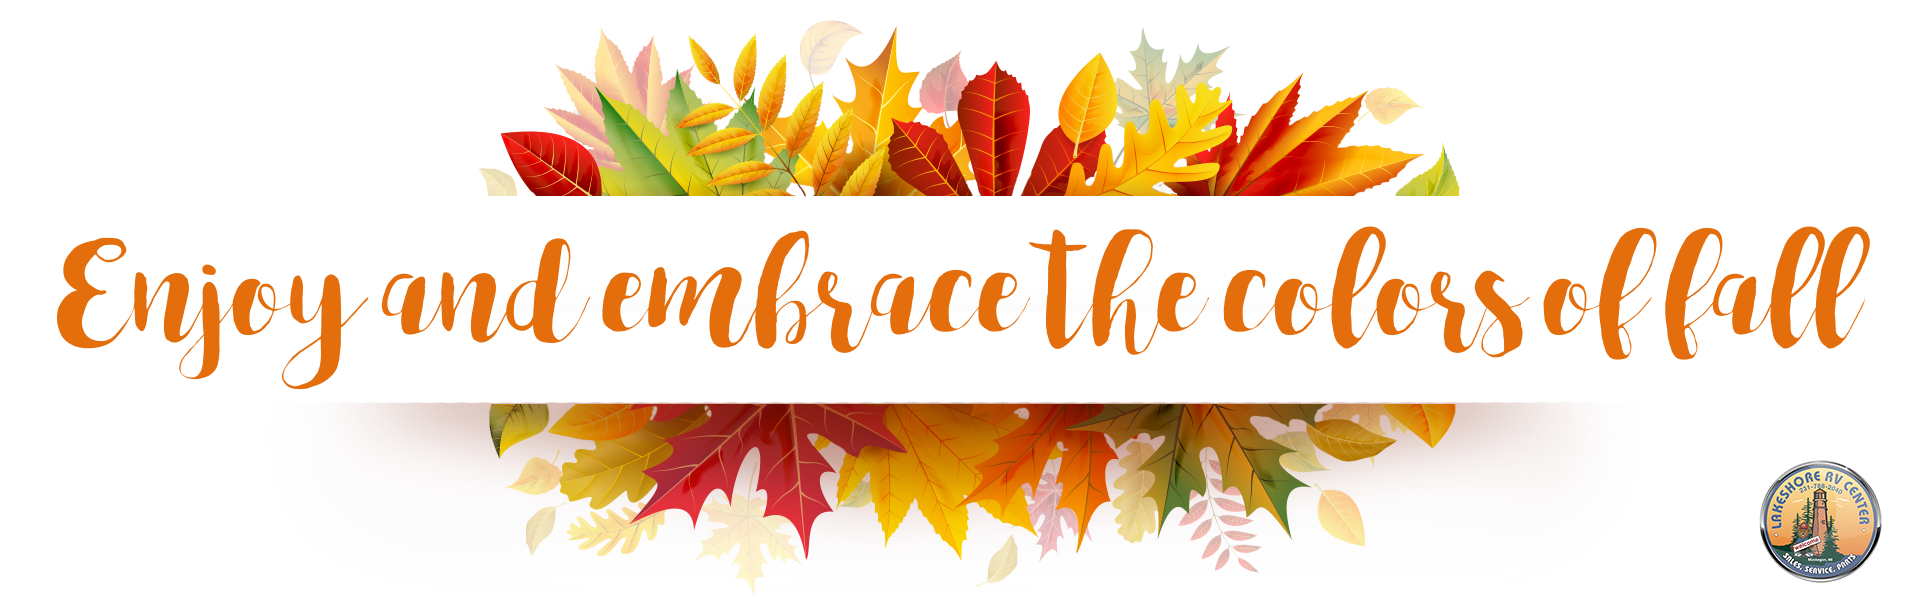 enjoy and embrace the colors of fall